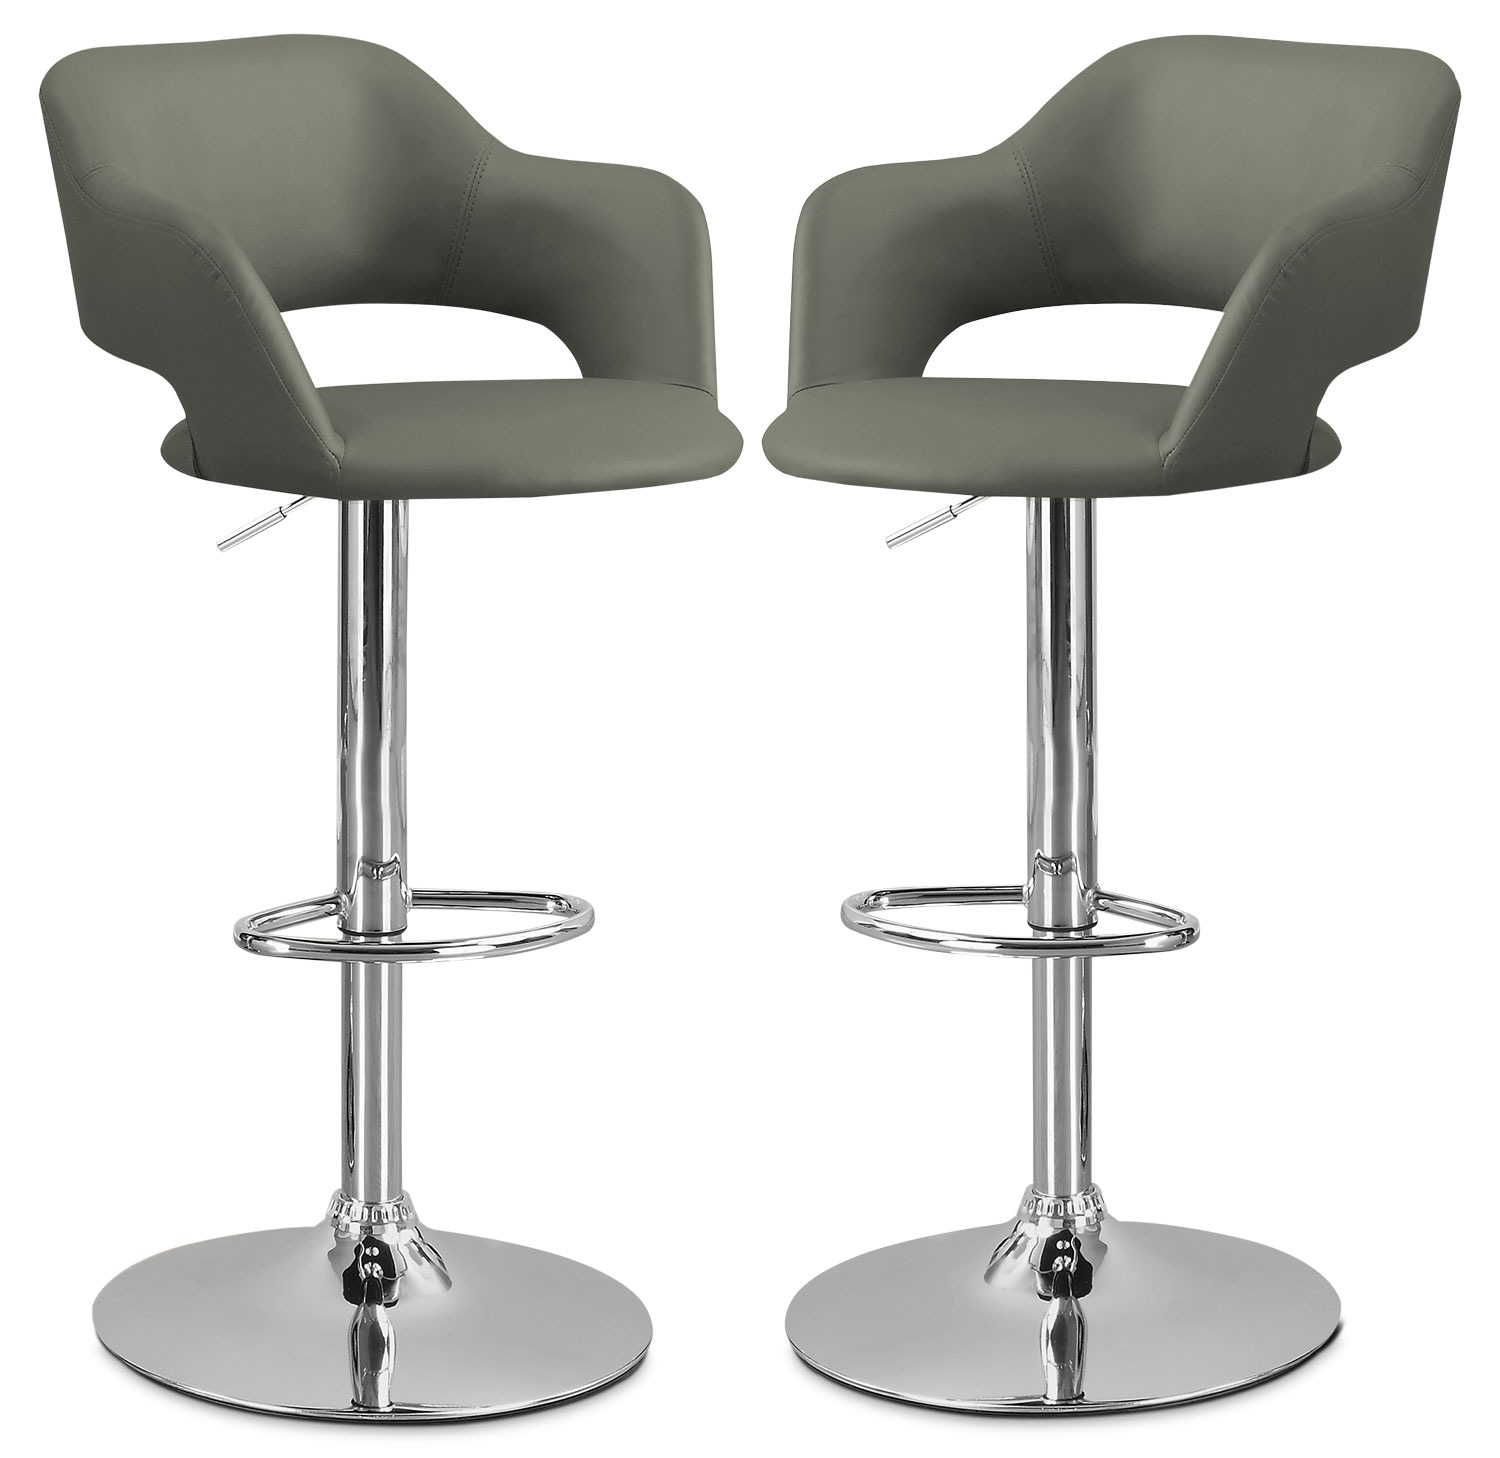 Monarch Hydraulic Contemporary Bar Stool Set of 2 Grey  : 423761 from www.thebrick.com size 1500 x 1458 jpeg 130kB